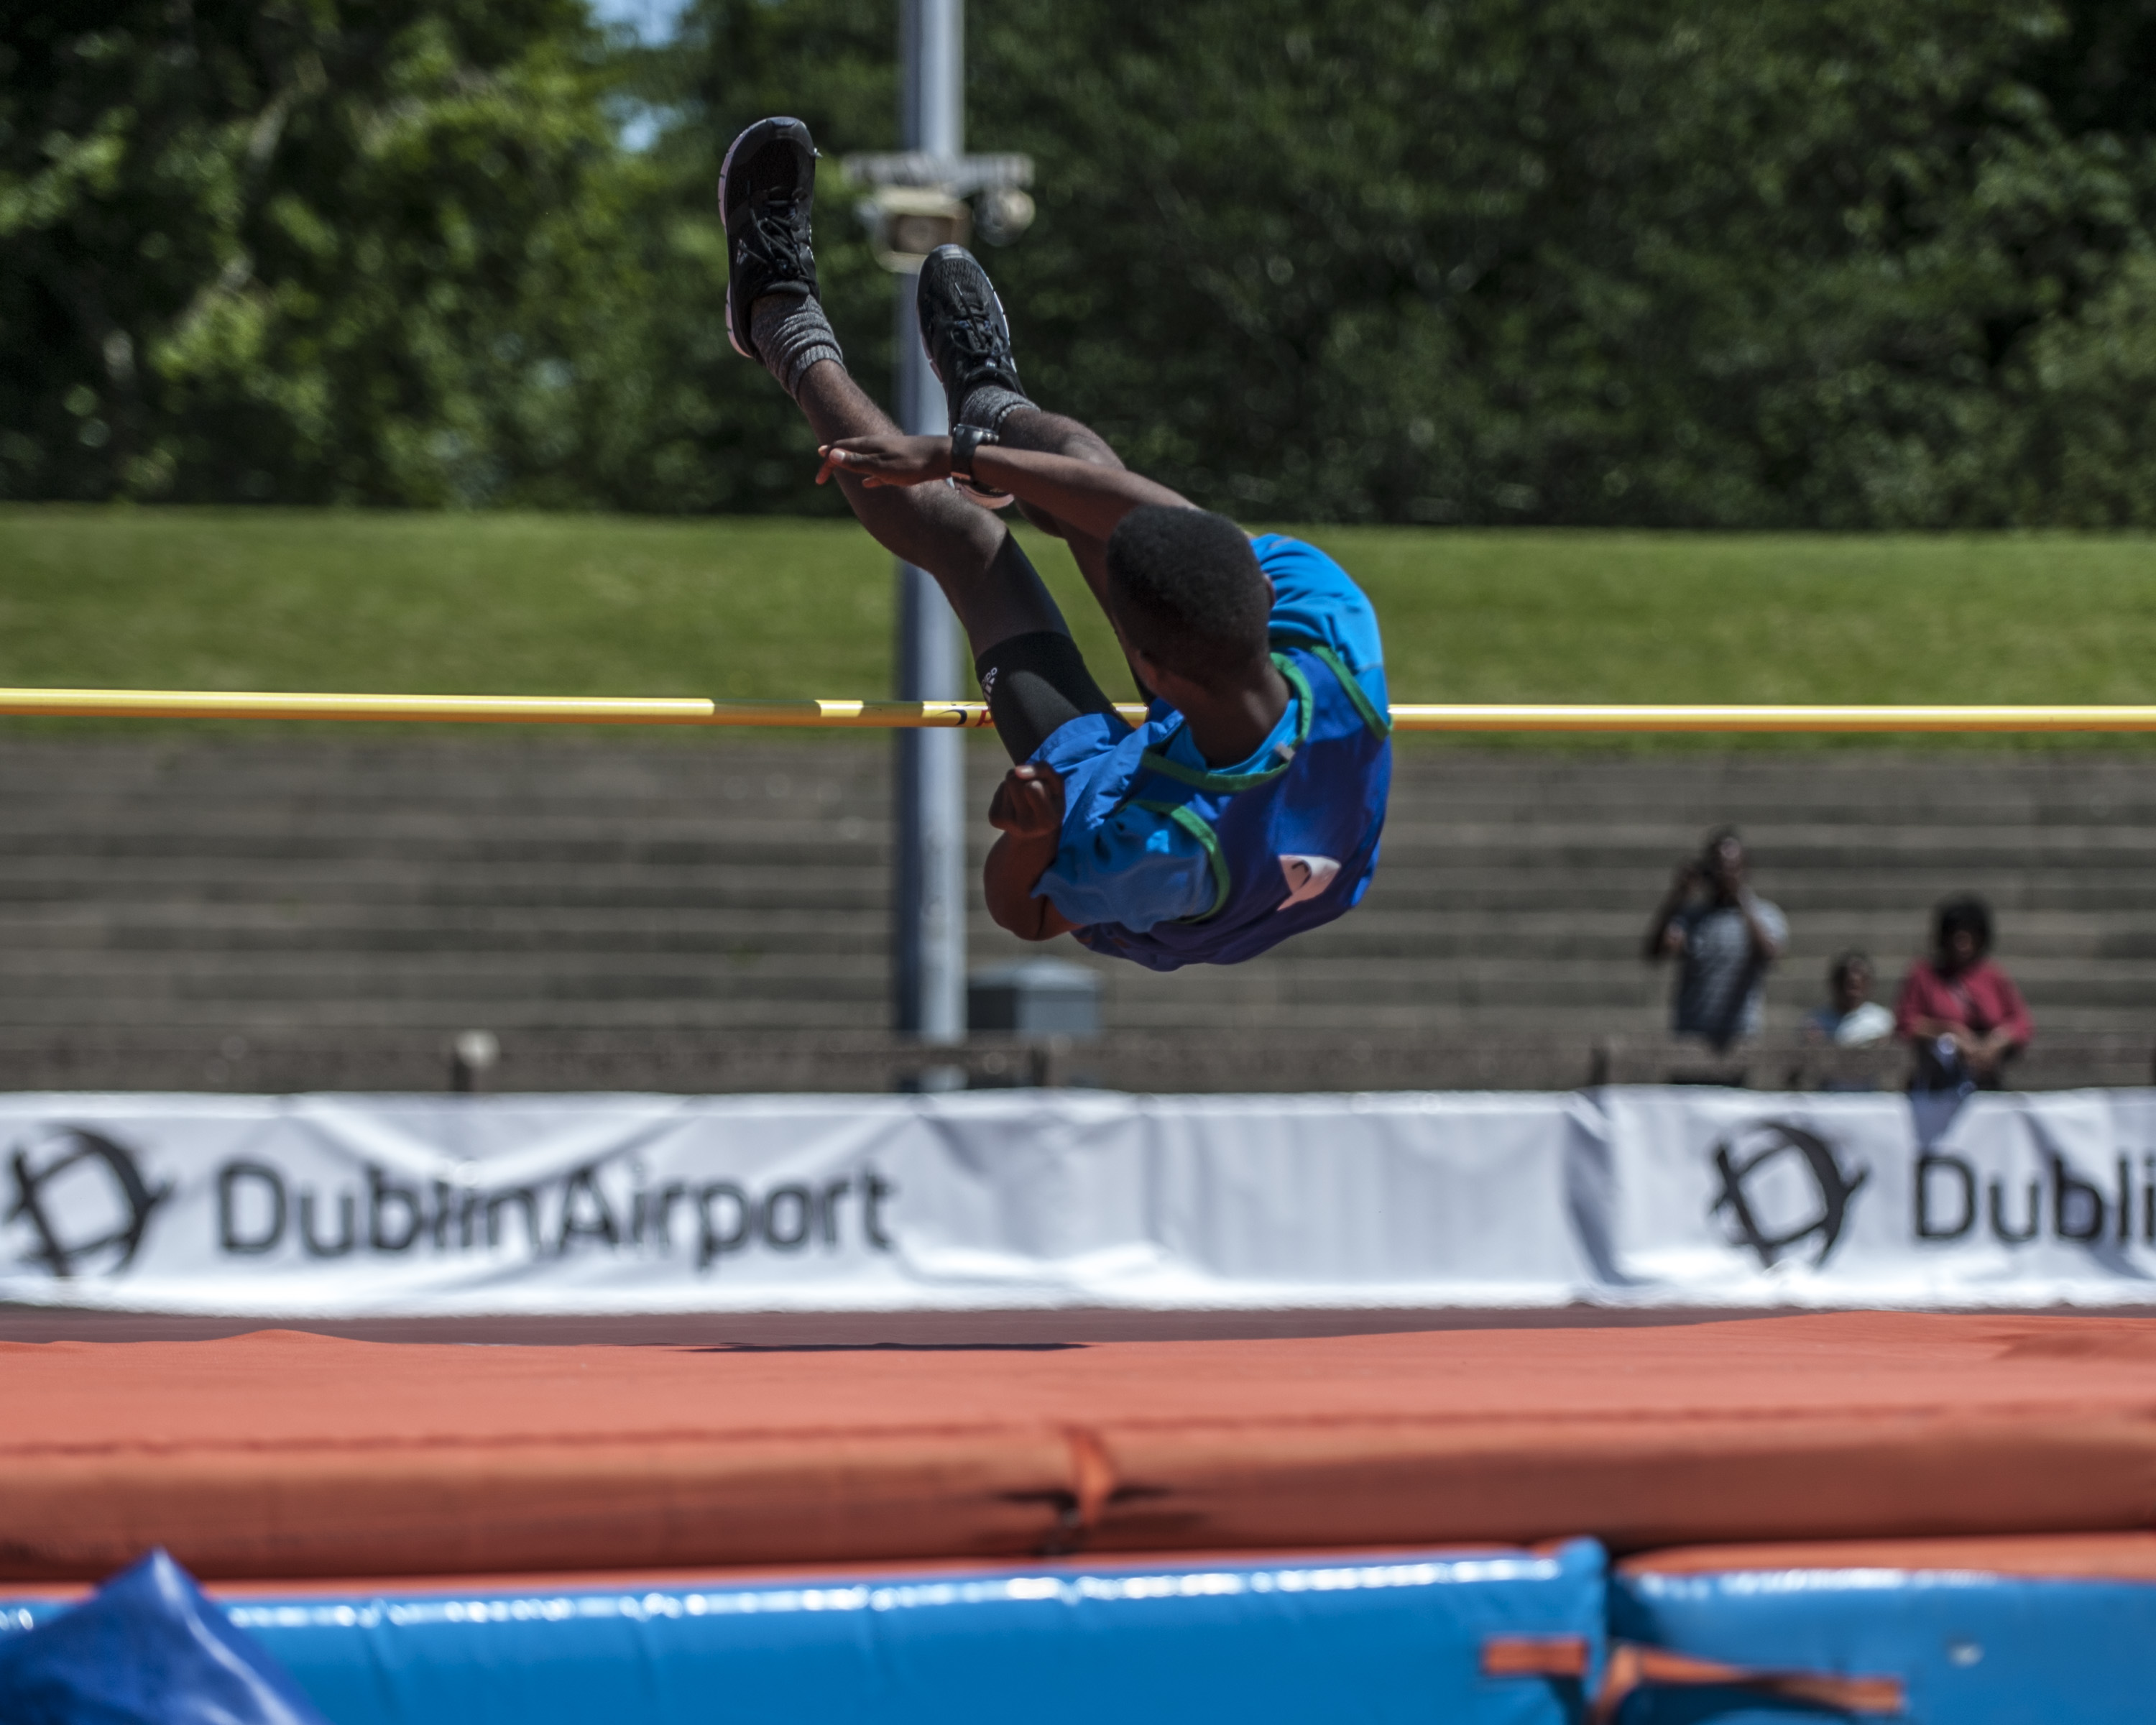 An athlete competing in the high jump in the Dublin Community Games